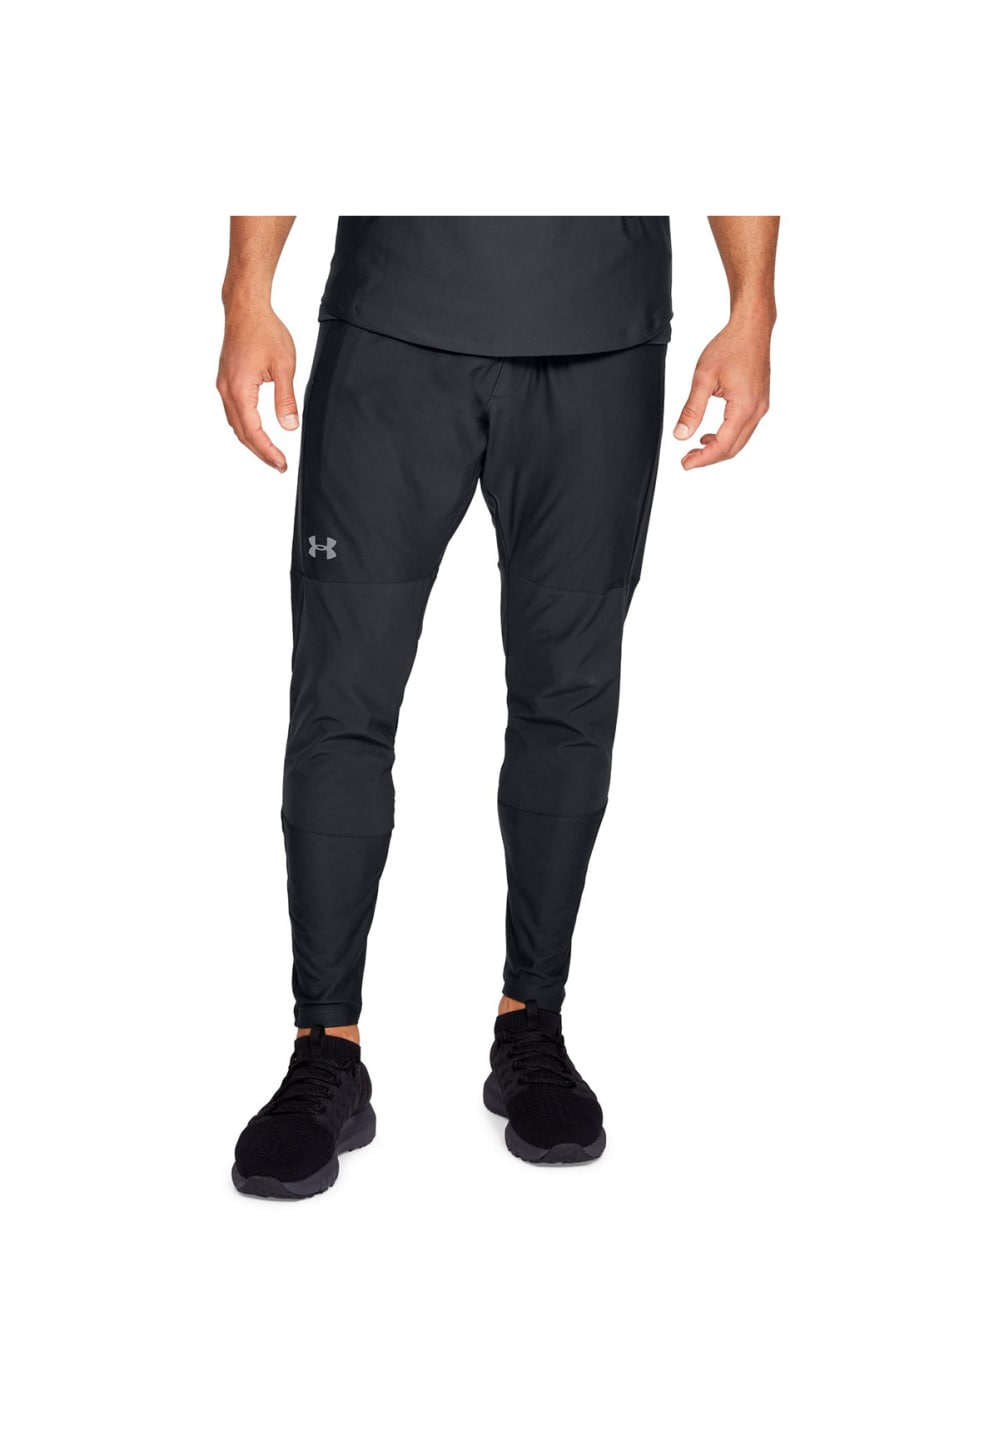 Under Armour Threadborne Vanish Pant - Fitnesshosen für Herren - Schwarz, Gr. X